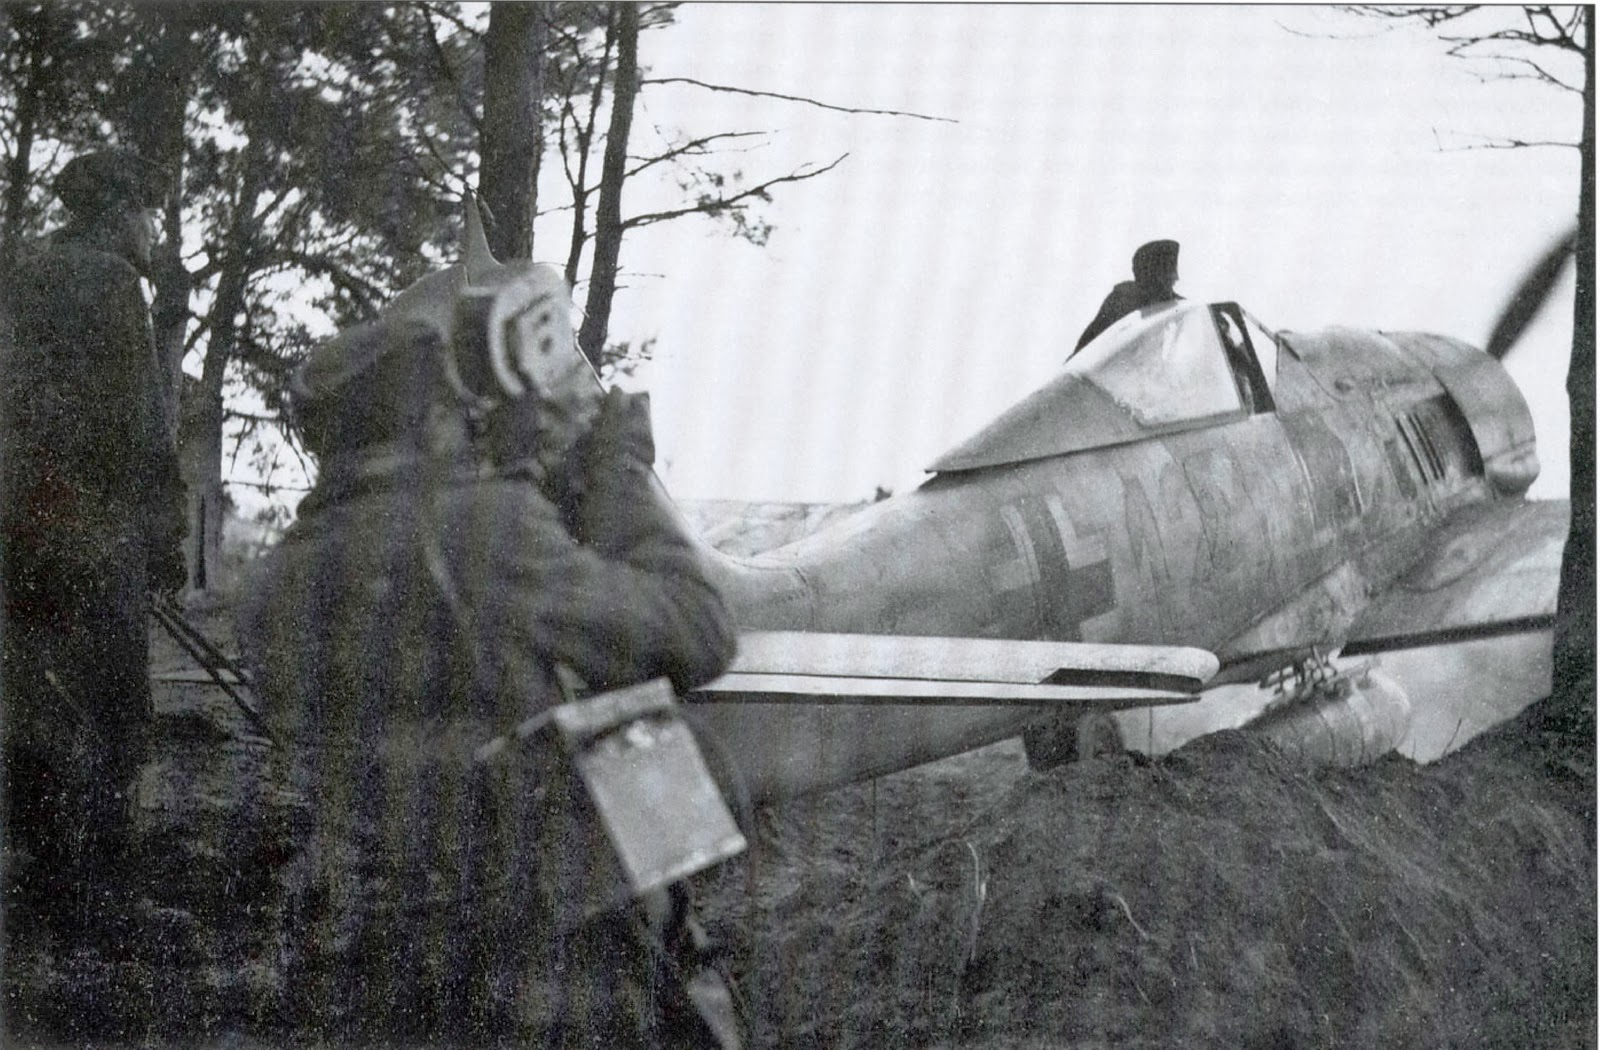 world war ii pictures in details pk cameraman made a footage of fw 190